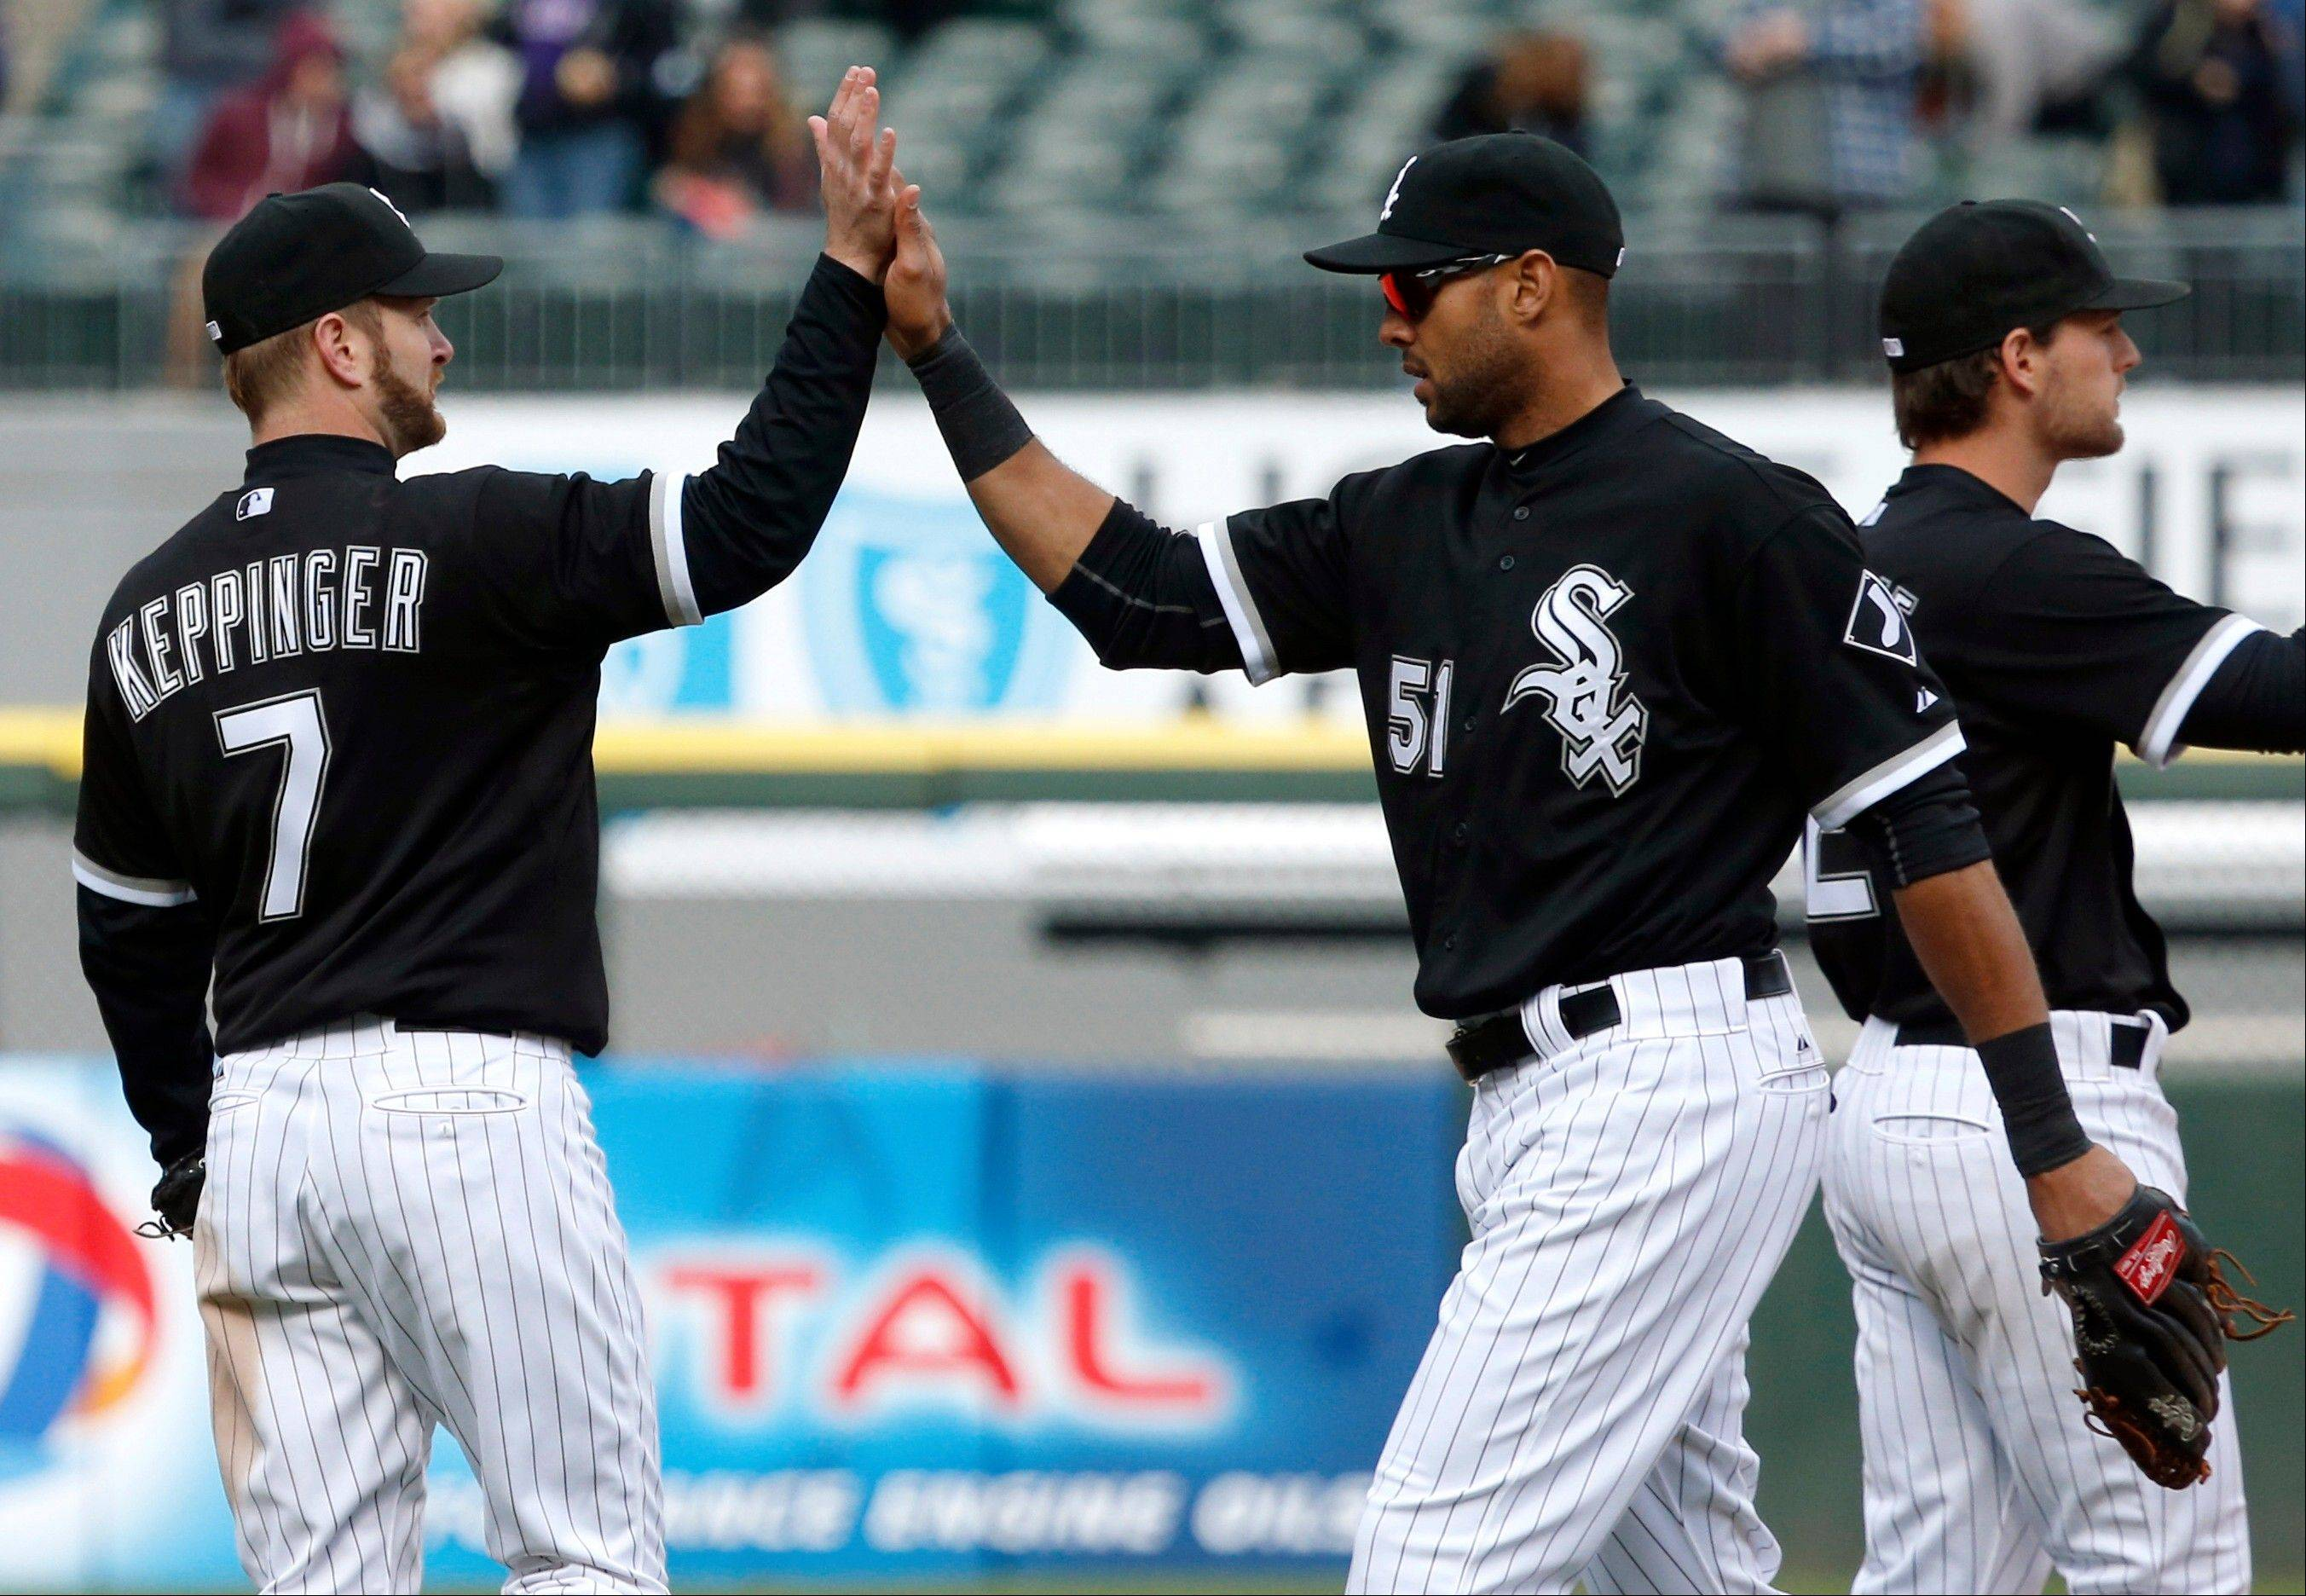 Associated PressWhite Sox third baseman Jeff Keppinger (7) celebrates with right fielder Alex Rios (51) after their 3-2 win over the Cleveland Indians Wednesday at U.S. Cellular Field.